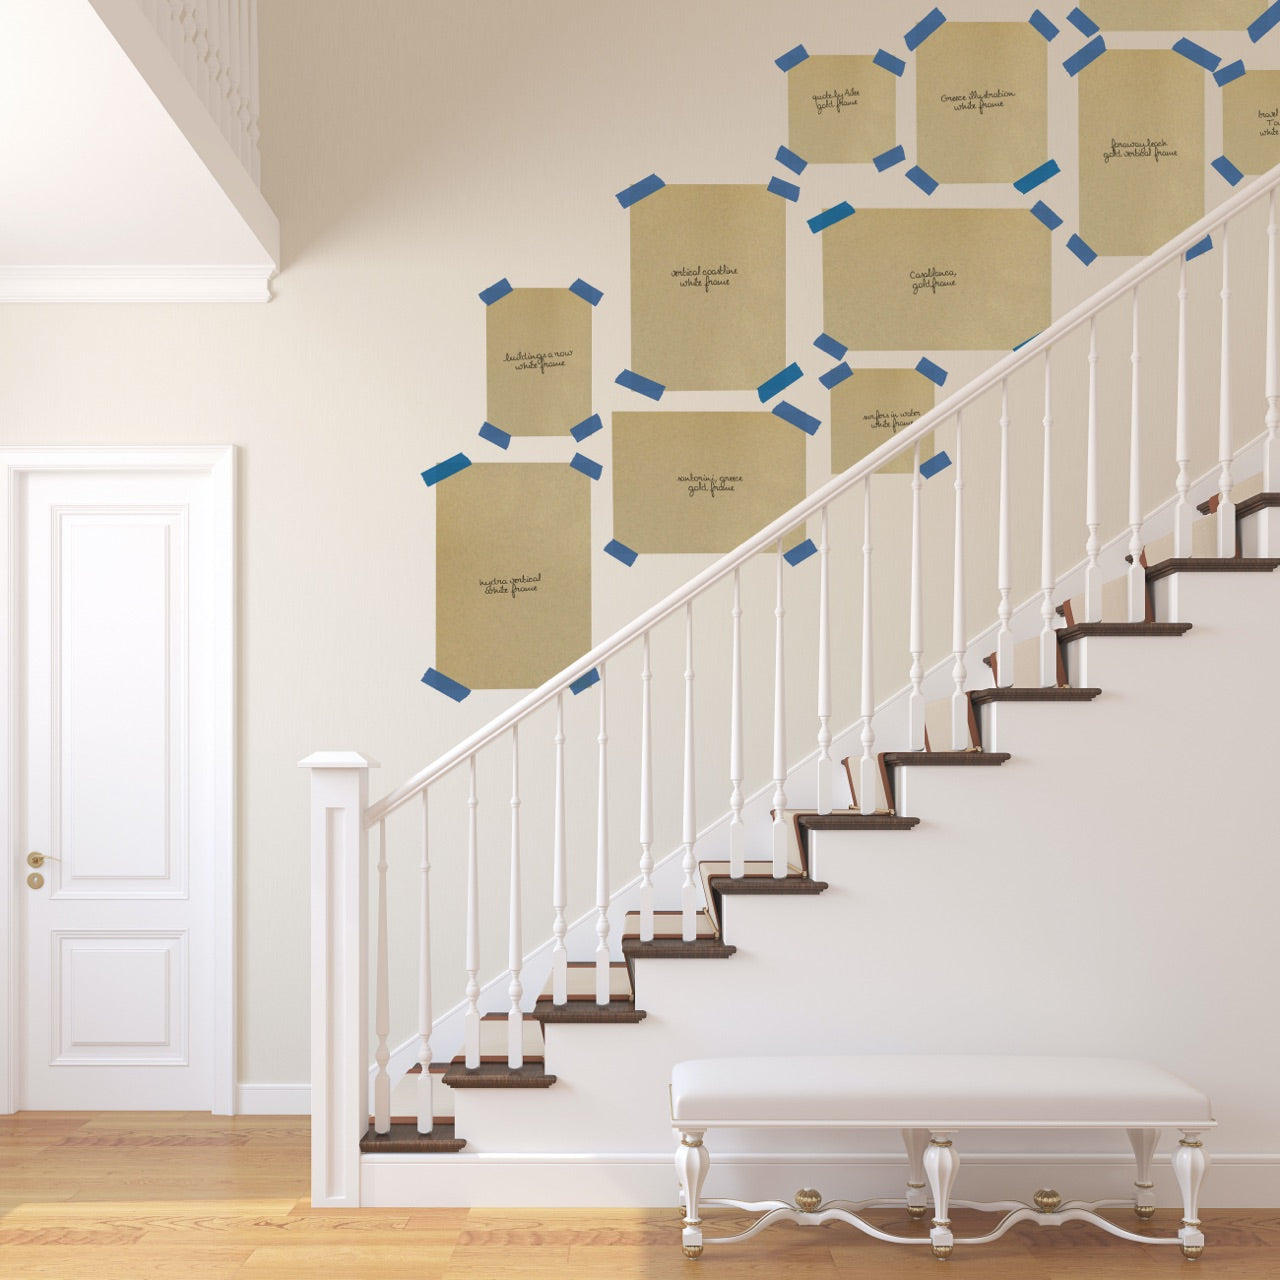 How to Design Staircase Gallery Wall